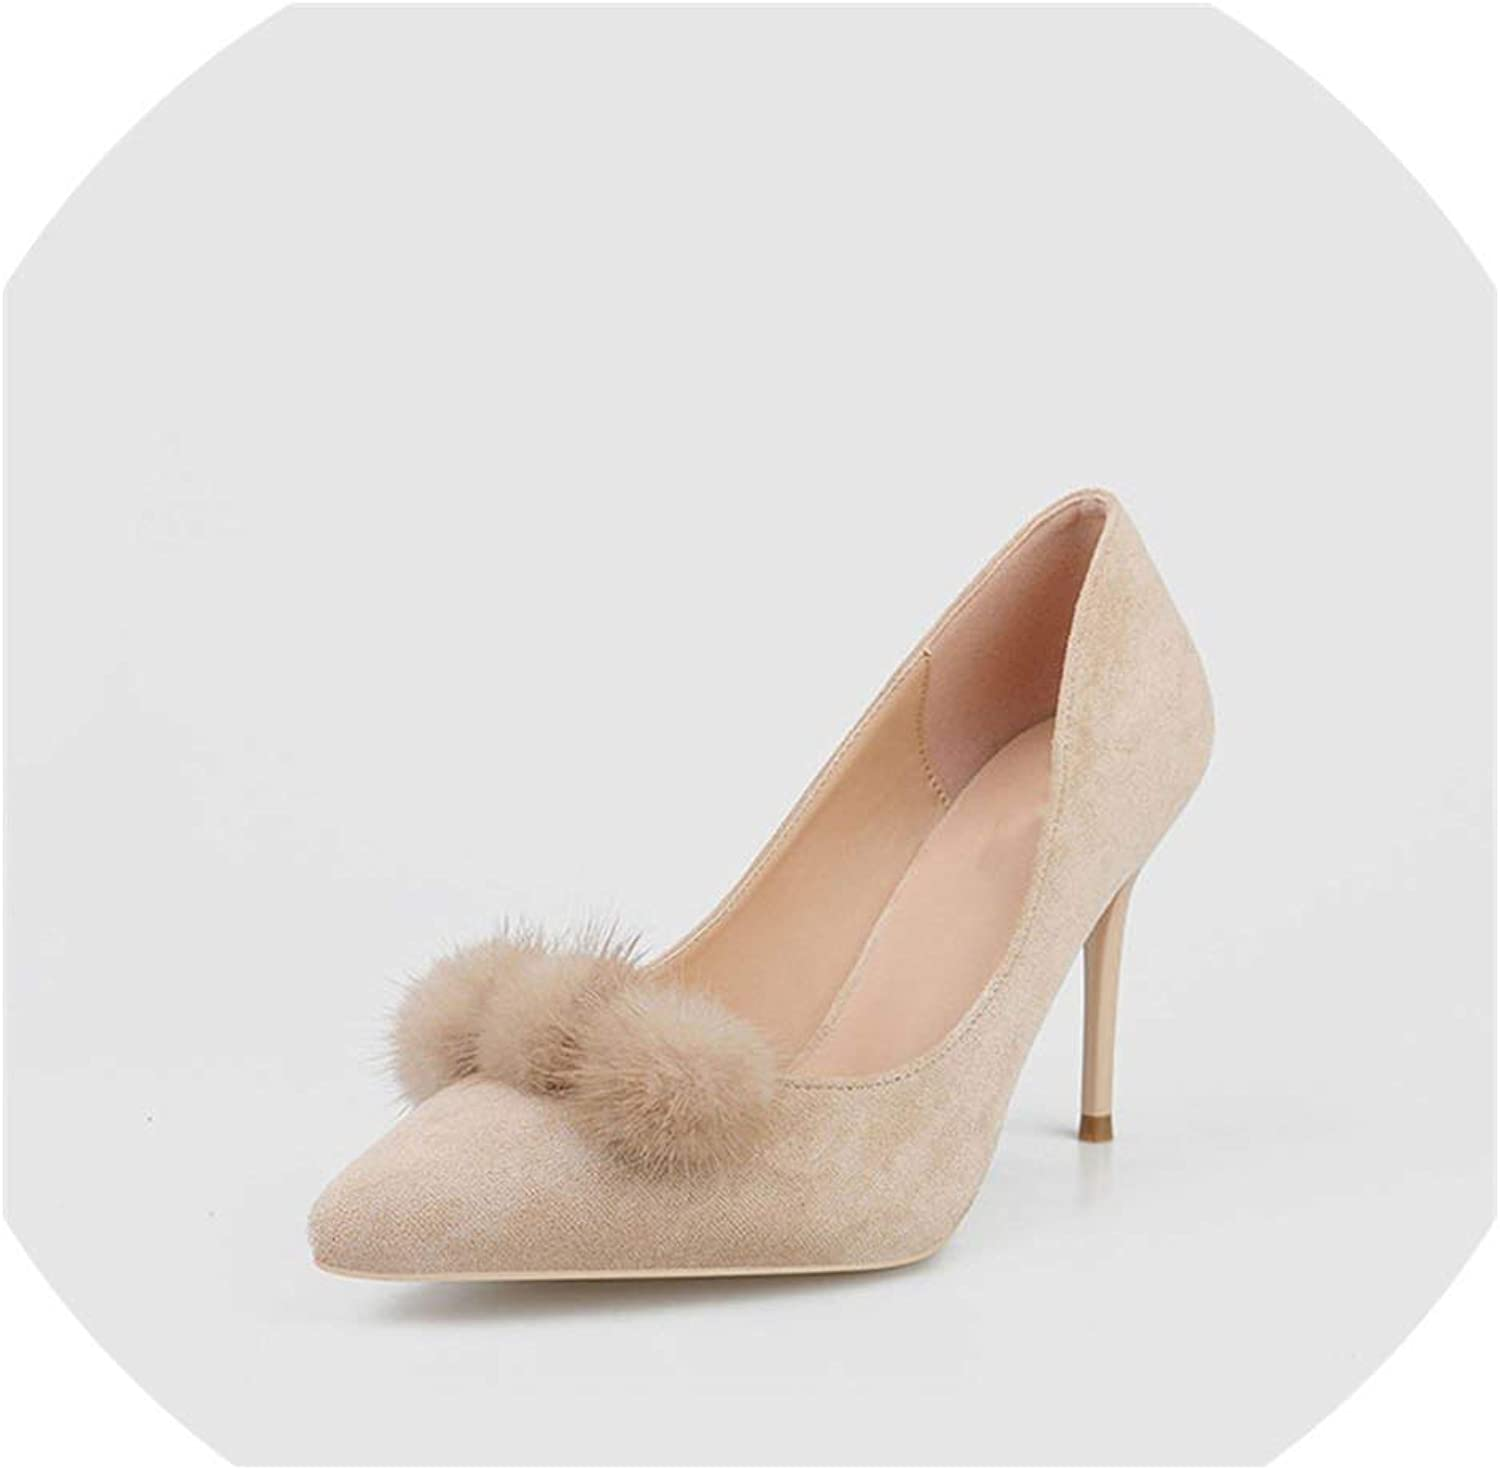 Sexy Women shoes Pumps 9Cm High Heel Suede Hairball shoes Woman Handmade Beige Pumps